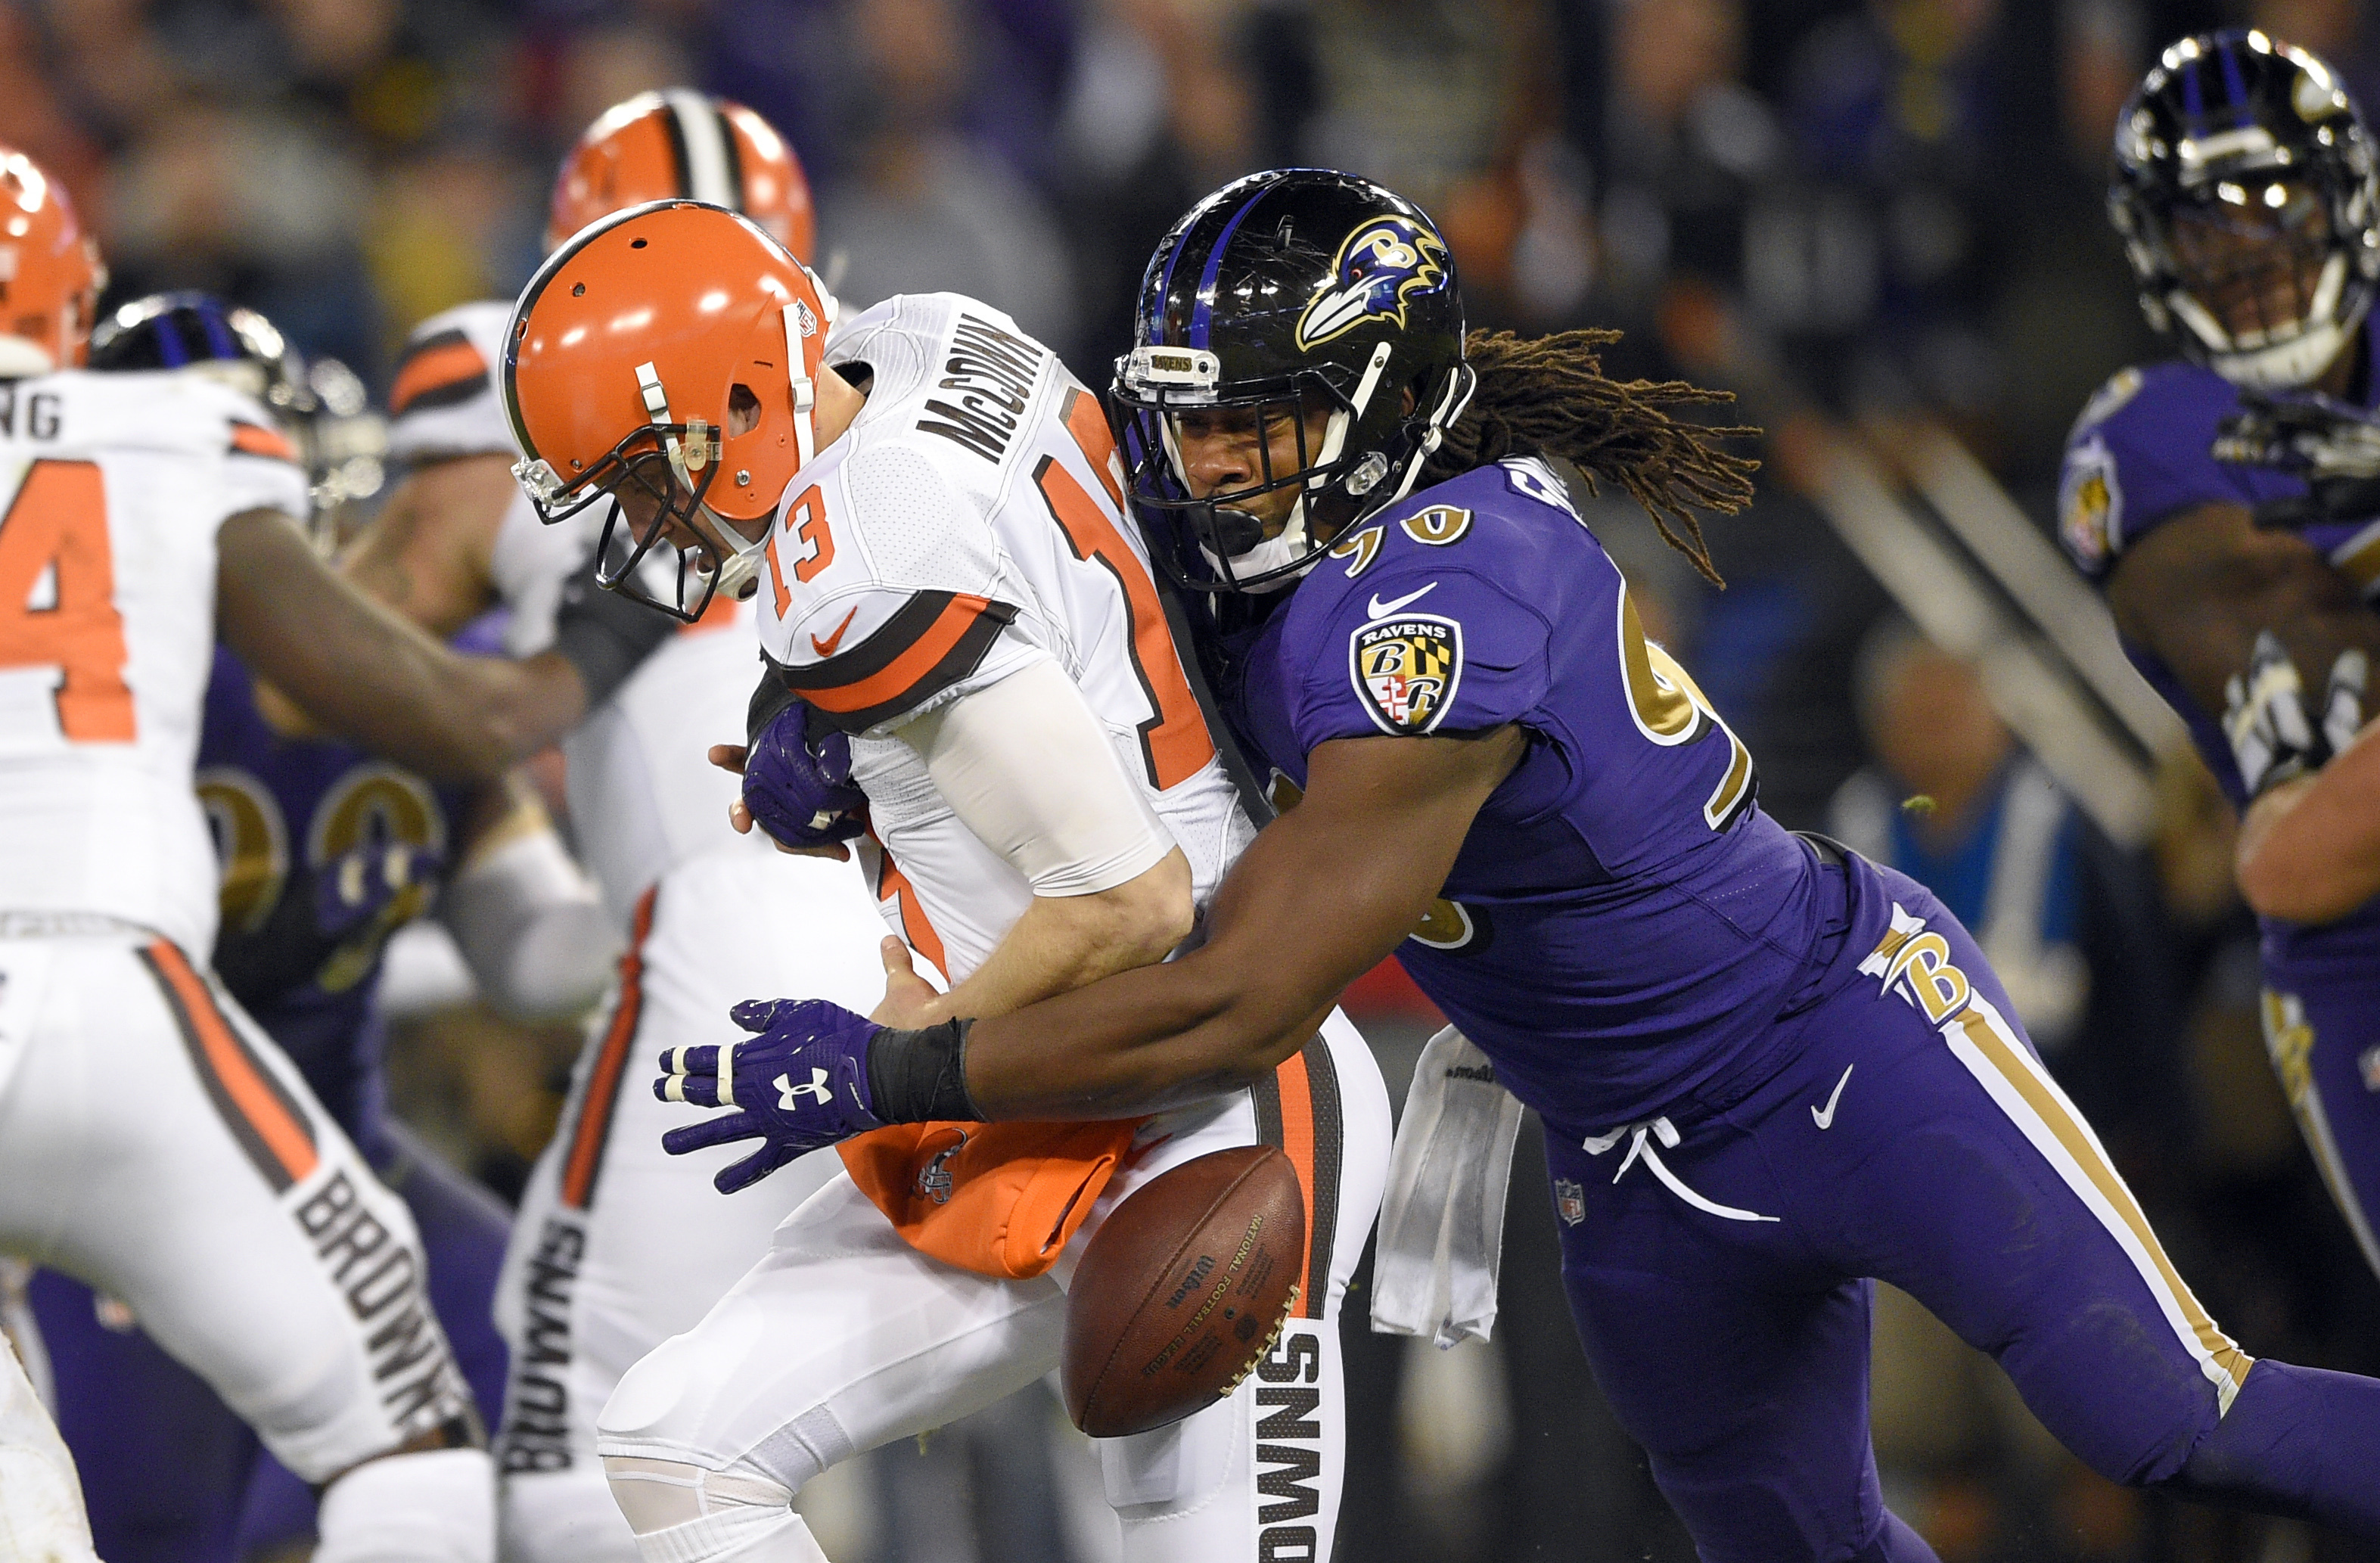 Cleveland Browns quarterback Josh McCown, left, fumbles the ball as he is sacked by Baltimore Ravens outside linebacker Za'Darius Smith during the second half an NFL football game, Thursday, Nov. 10, 2016, in Baltimore. Cleveland recovered the ball on the